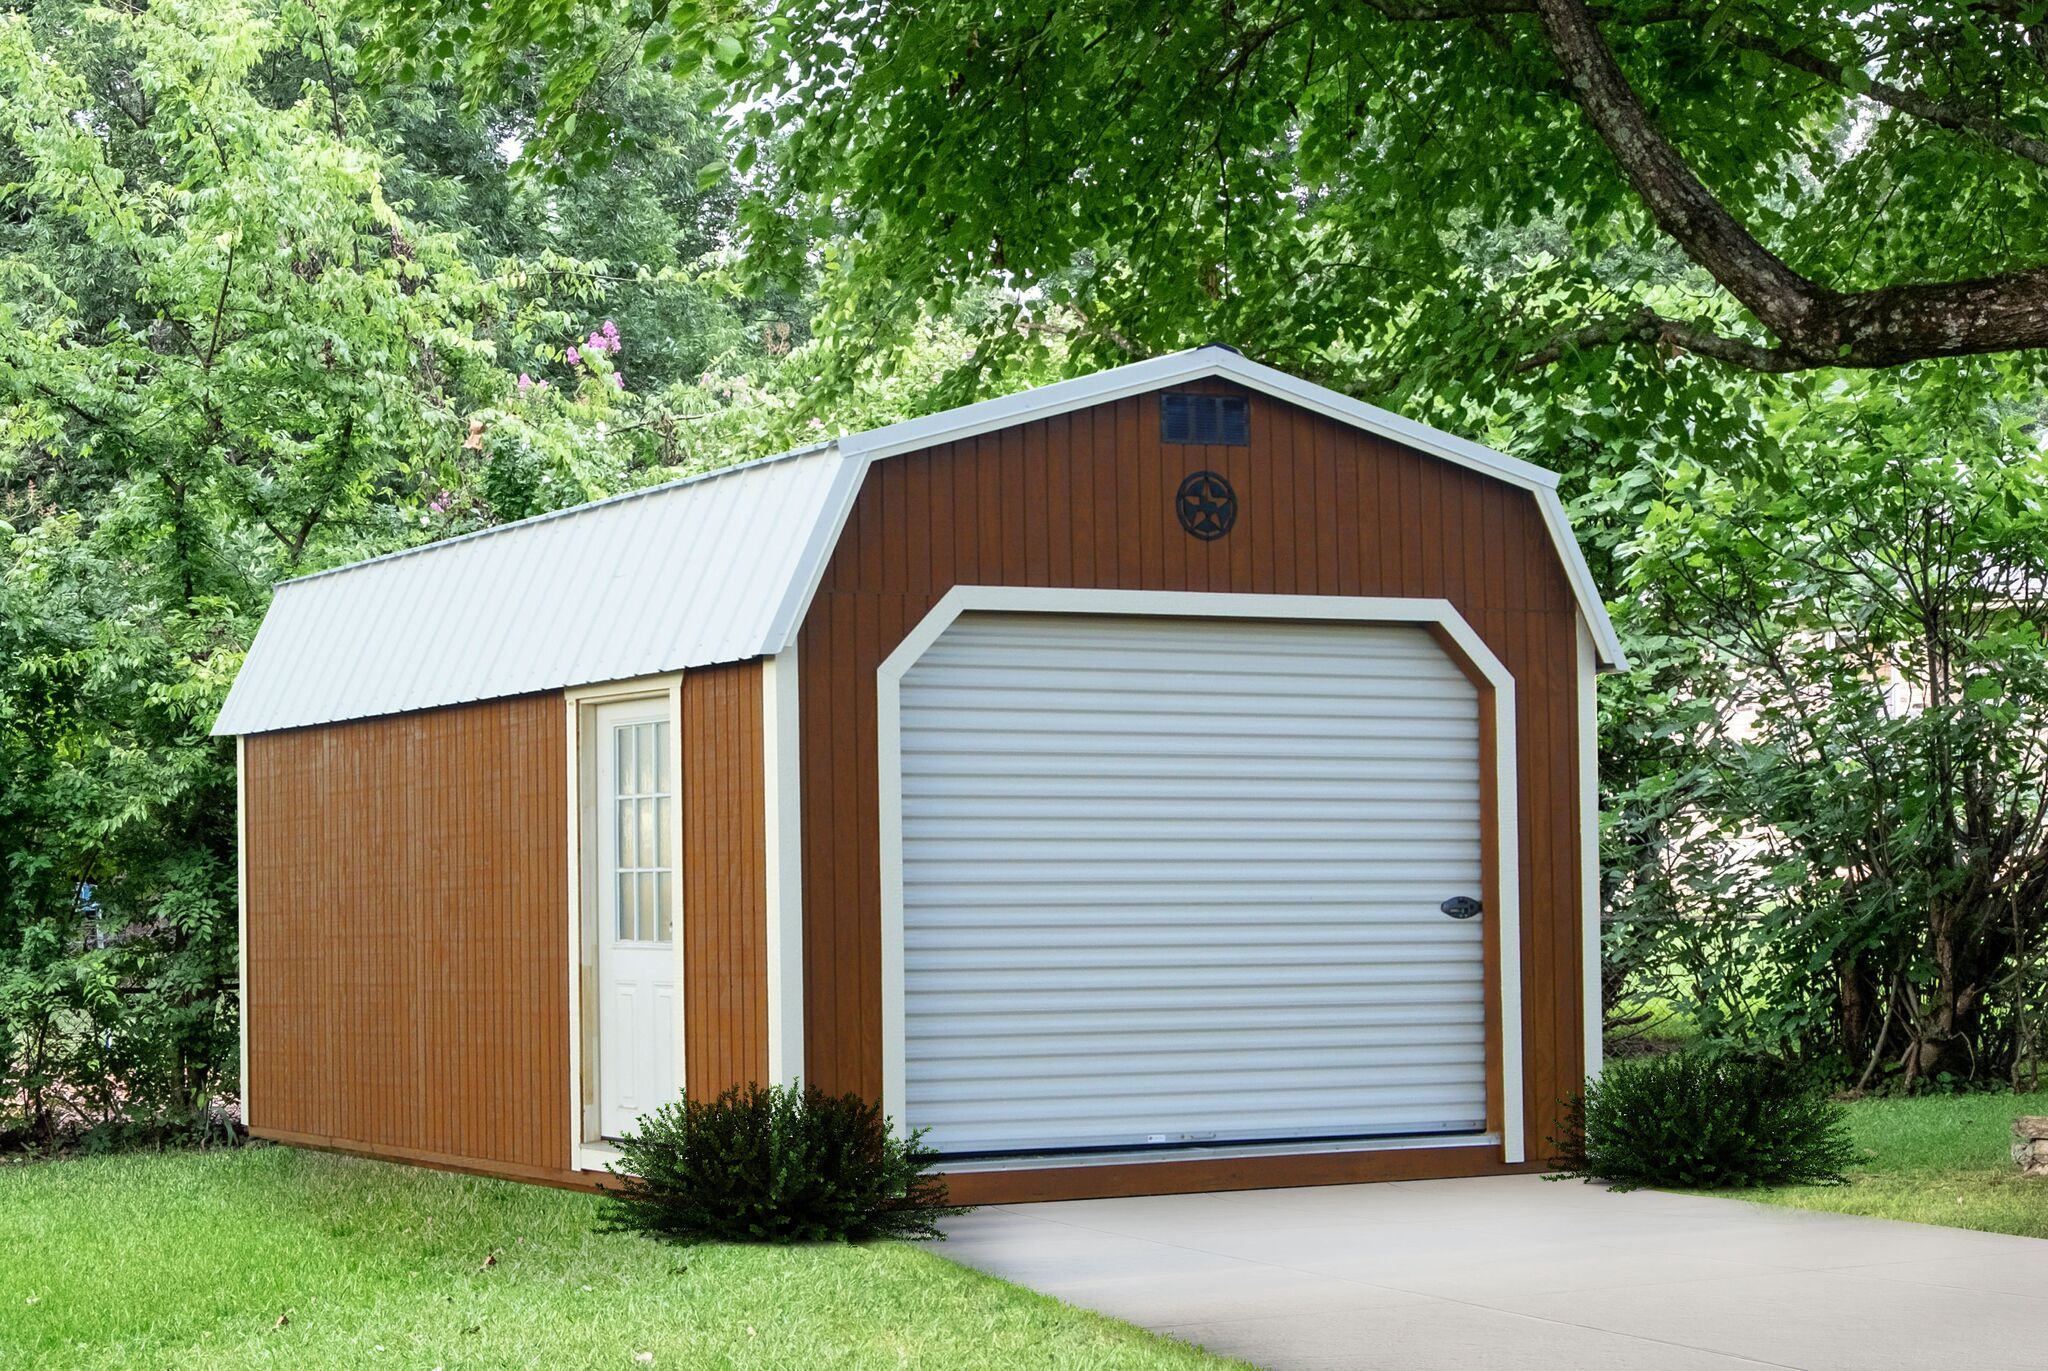 Painted Lofted Garage